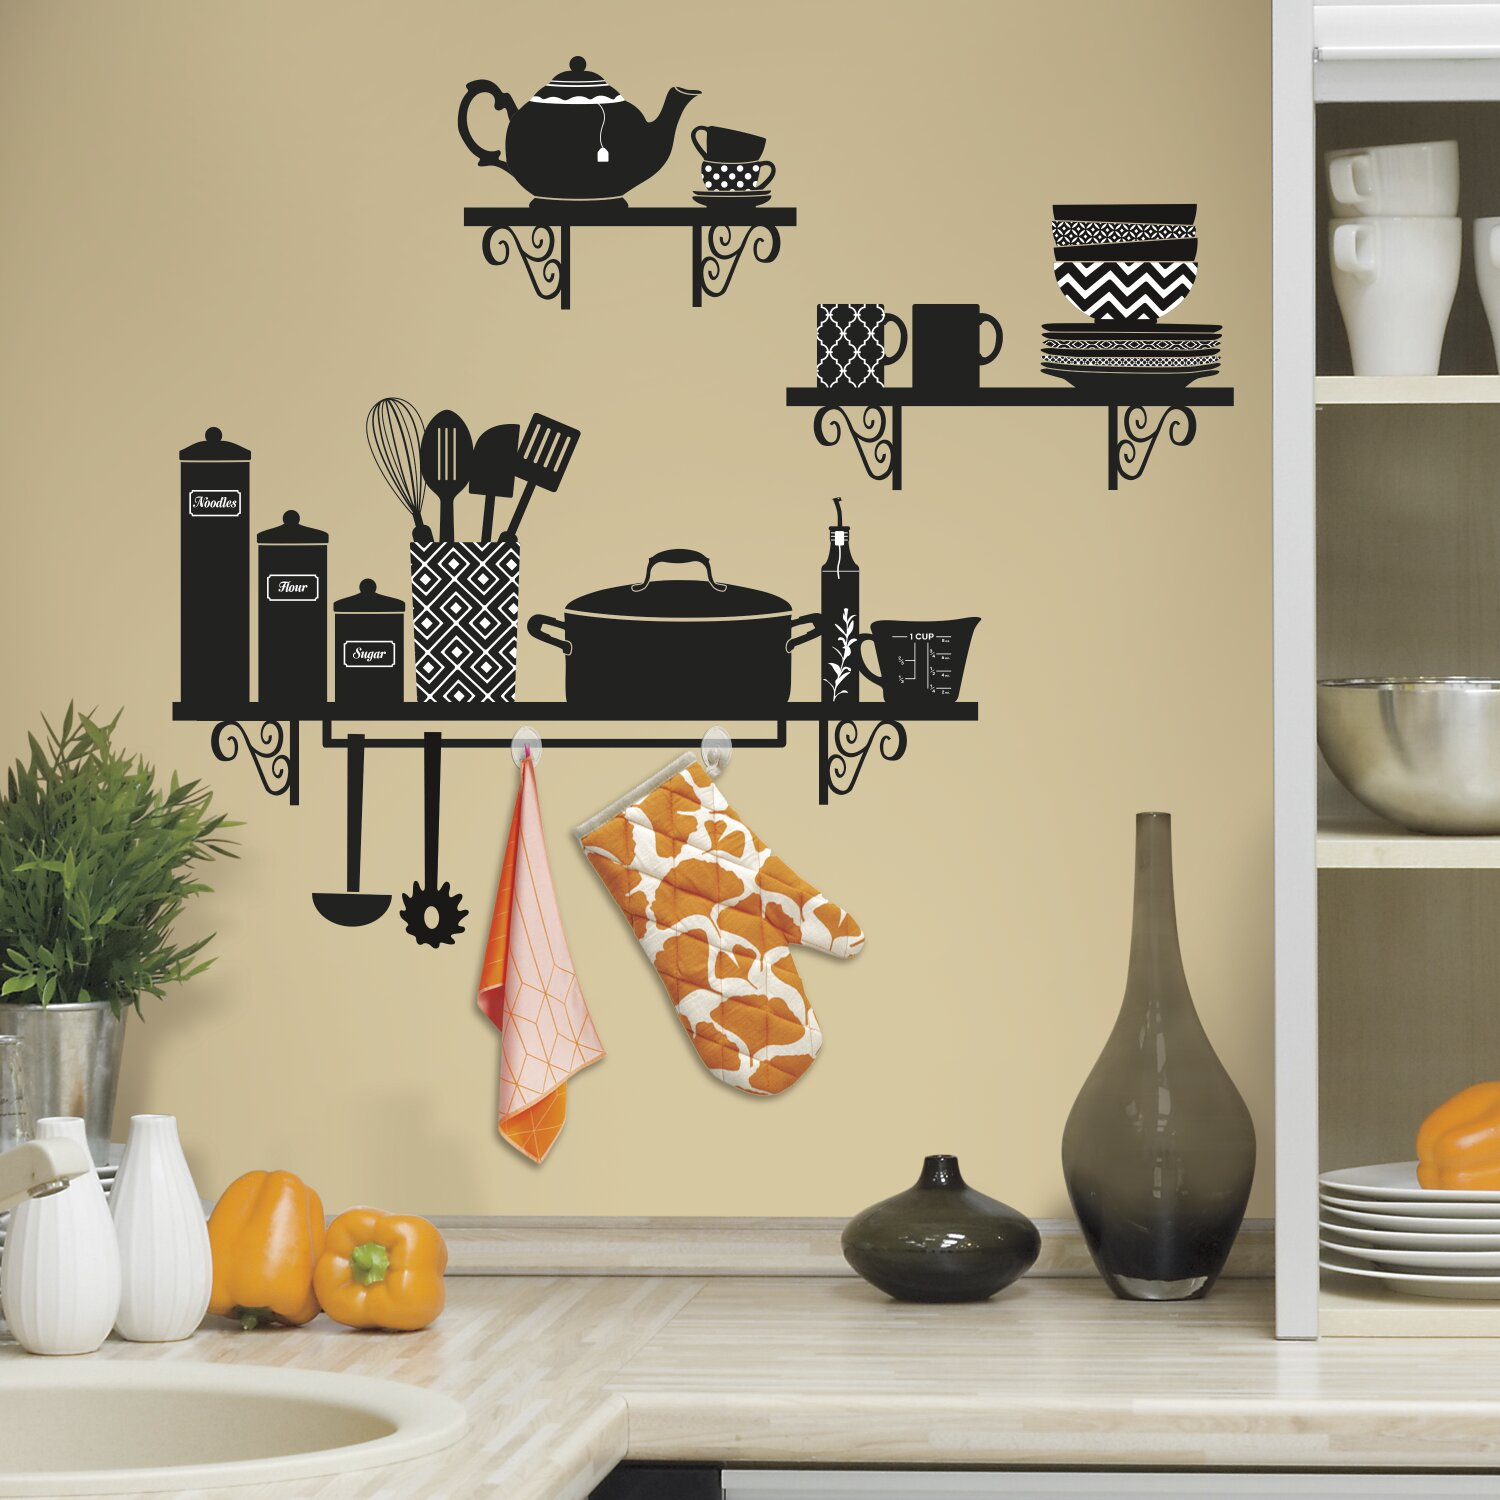 Room mates deco build a kitchen shelf wall decal reviews - Kitchen wall stickers decor ...